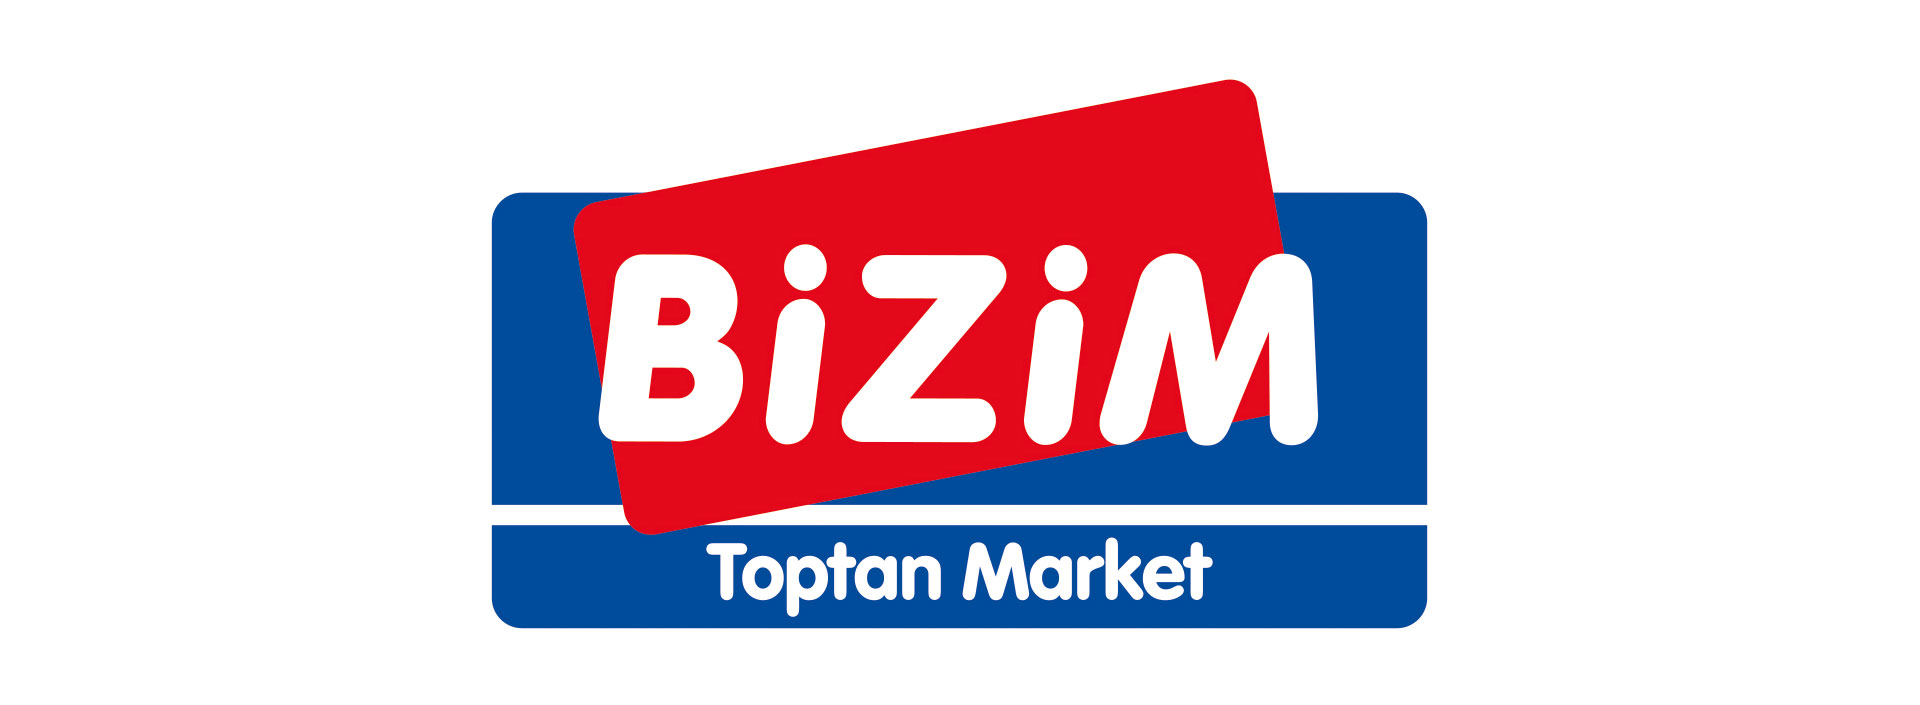 Bizim Toptan increased sales revenues to TL 2.5 billion in the first half of 2020